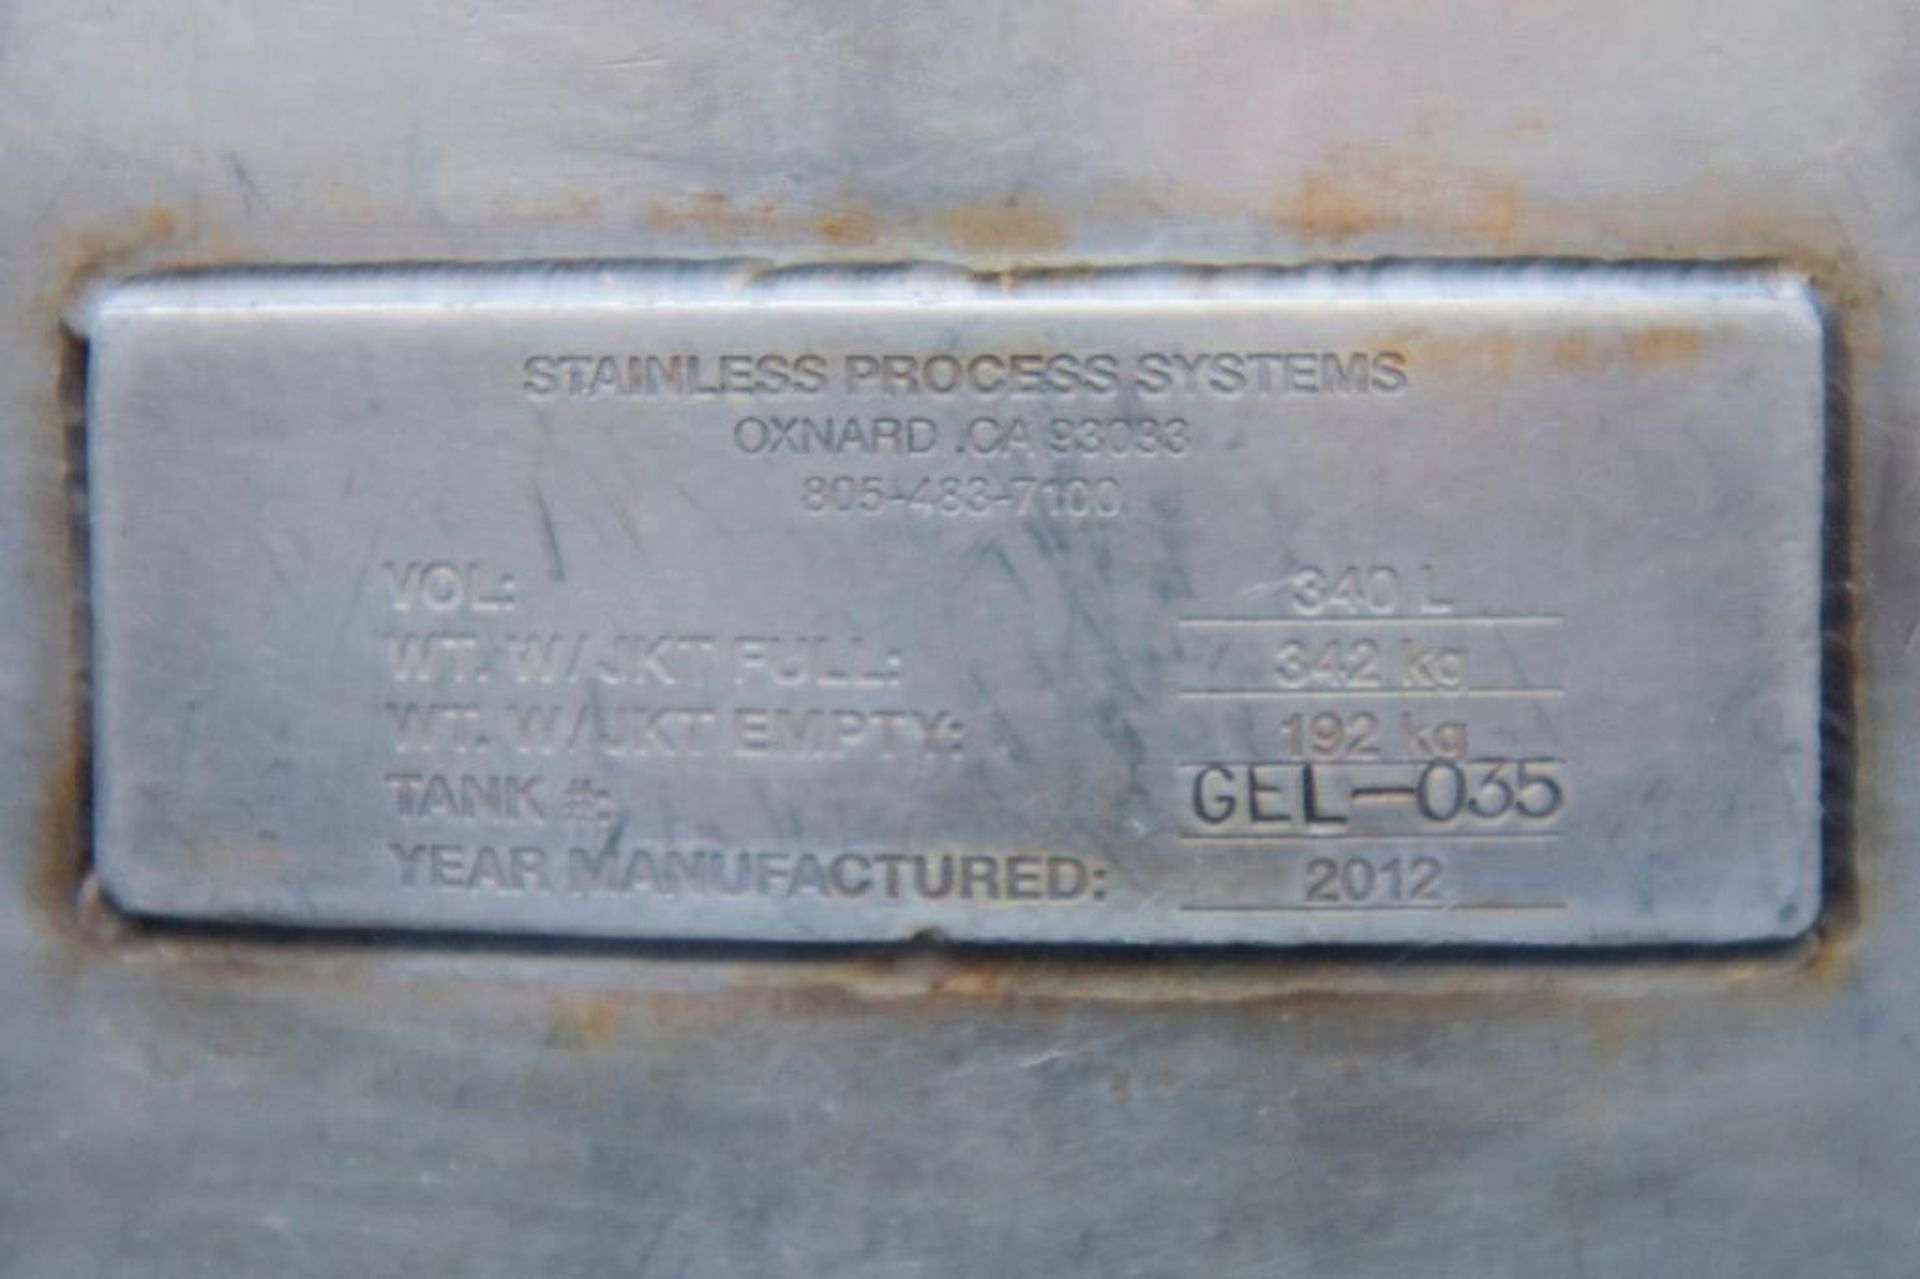 Jacketed Stainless Steel Holding Tank 340L - Image 18 of 18